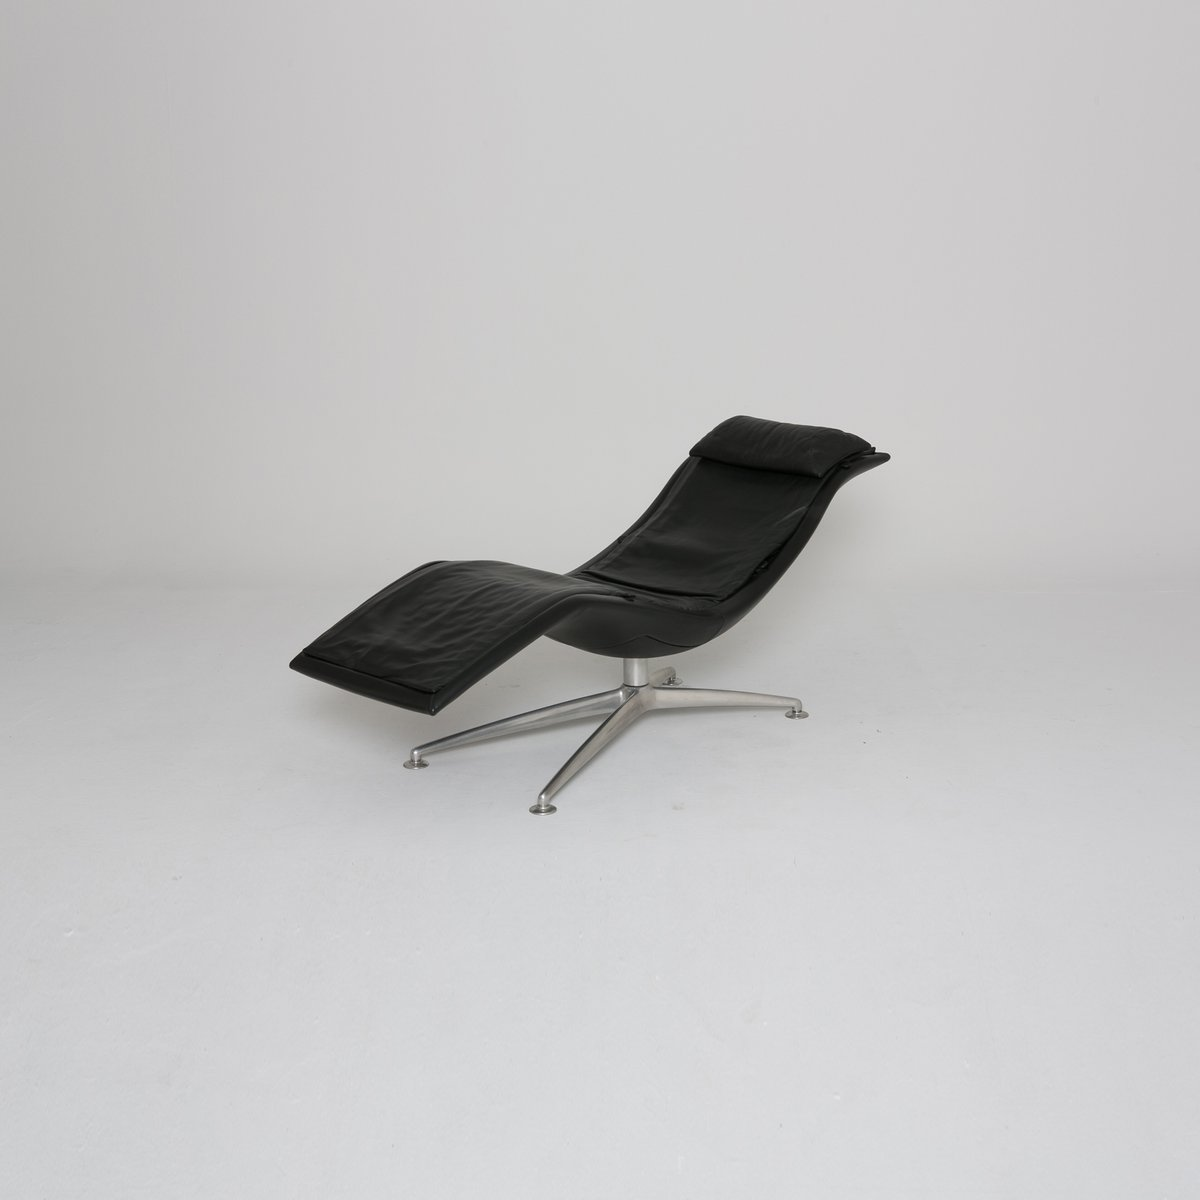 Larus chaise longue from poltrona frau 2001 for sale at for Chaise longue frau